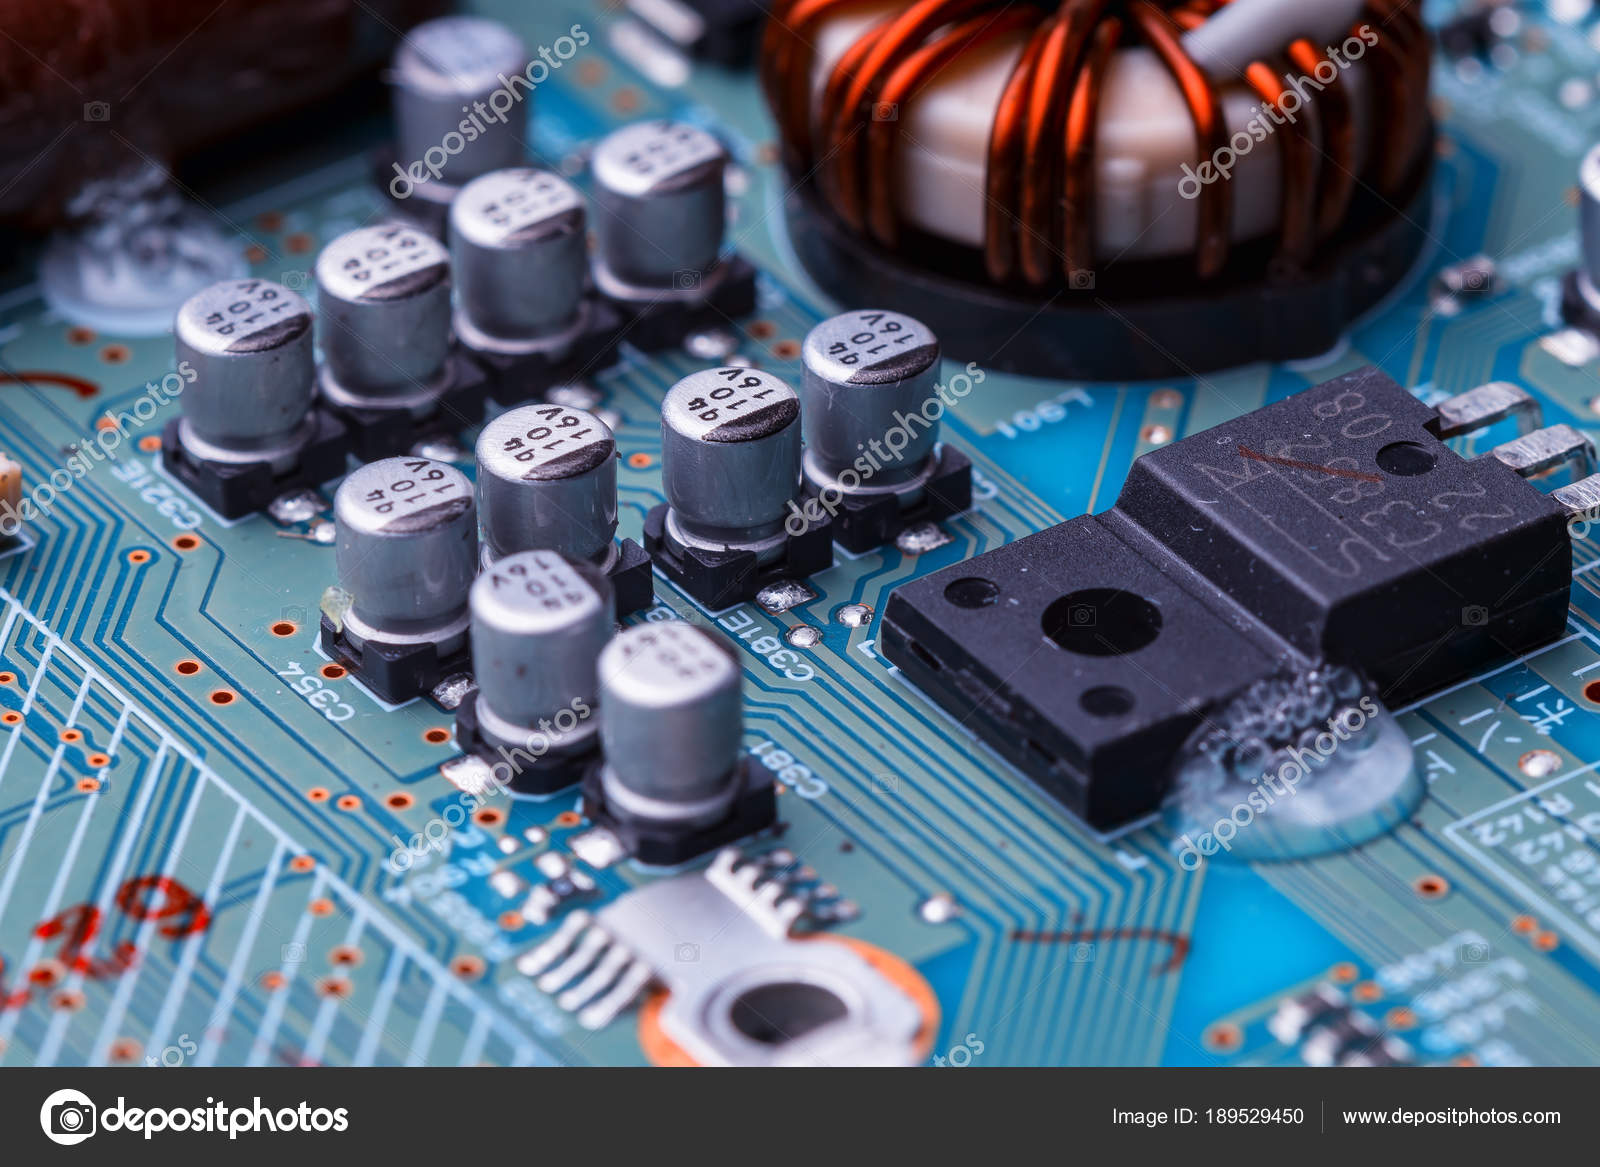 Printed Circuit Board Chips Radio Components Electronics